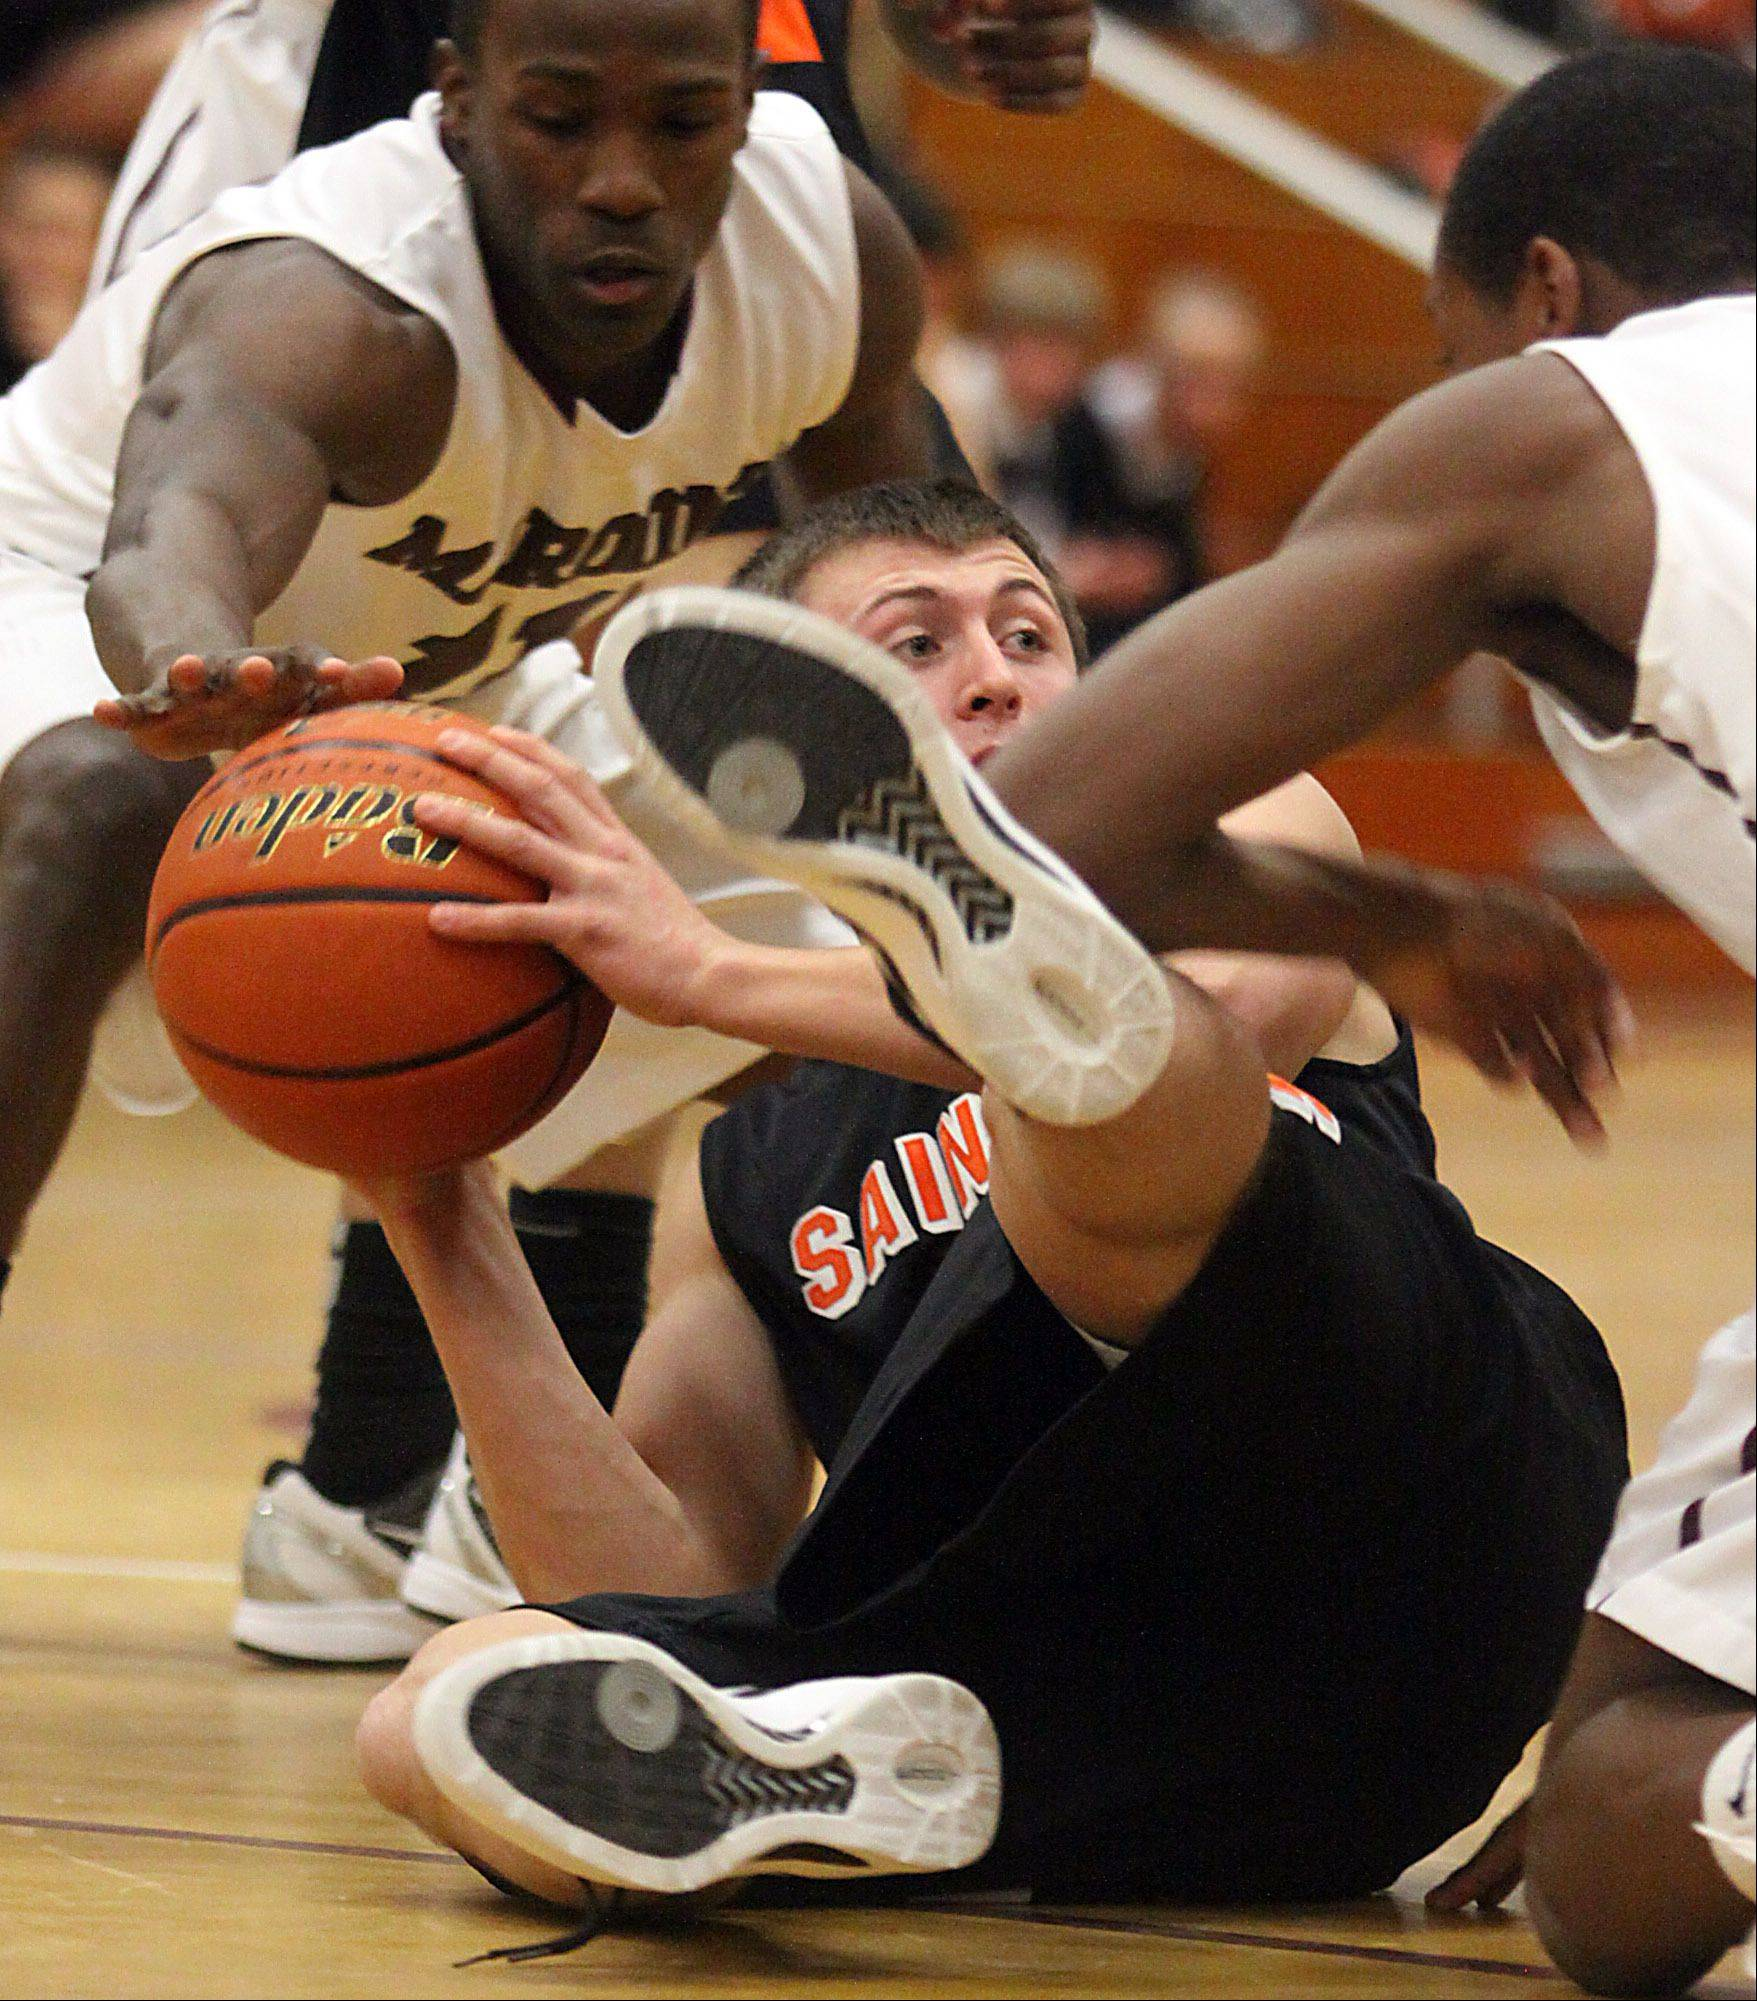 St. Charles East's Charlie Fisher, center, tries to escape Elgin's Dennis Moore, left, and Kory Brown during Friday's basketball game at Chesbrough Fieldhouse in Elgin.